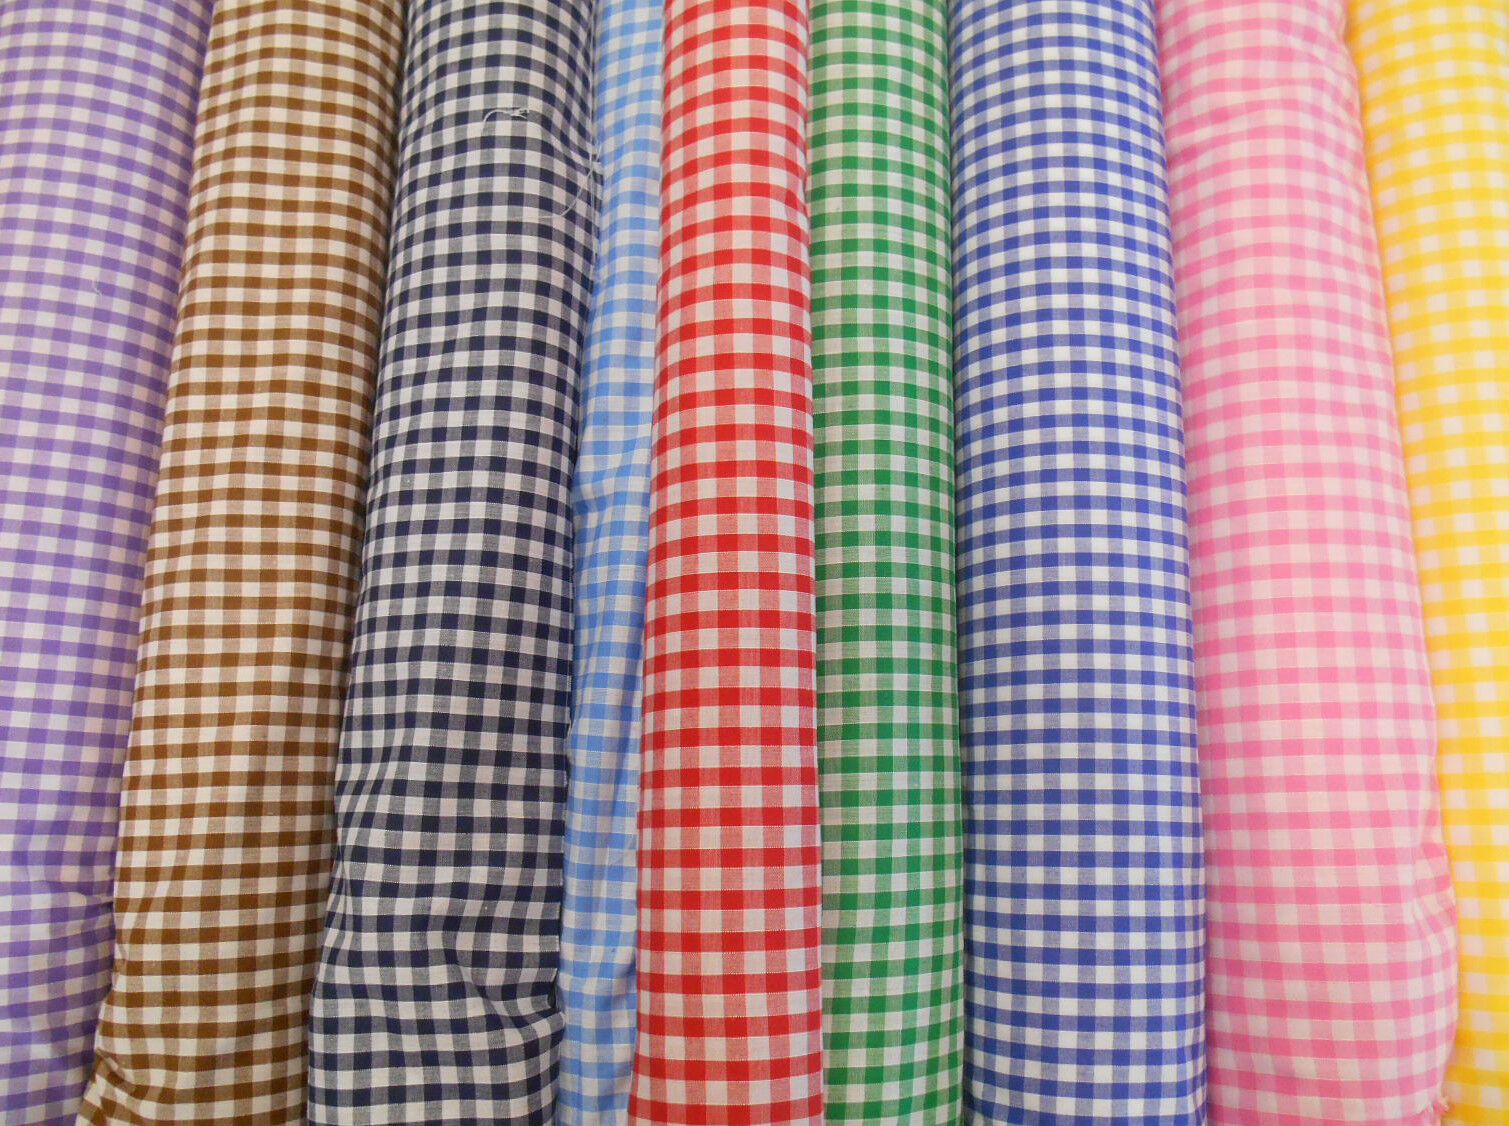 Gingham Check Polycotton Dress Amp Craft Fabric Roll Sold By